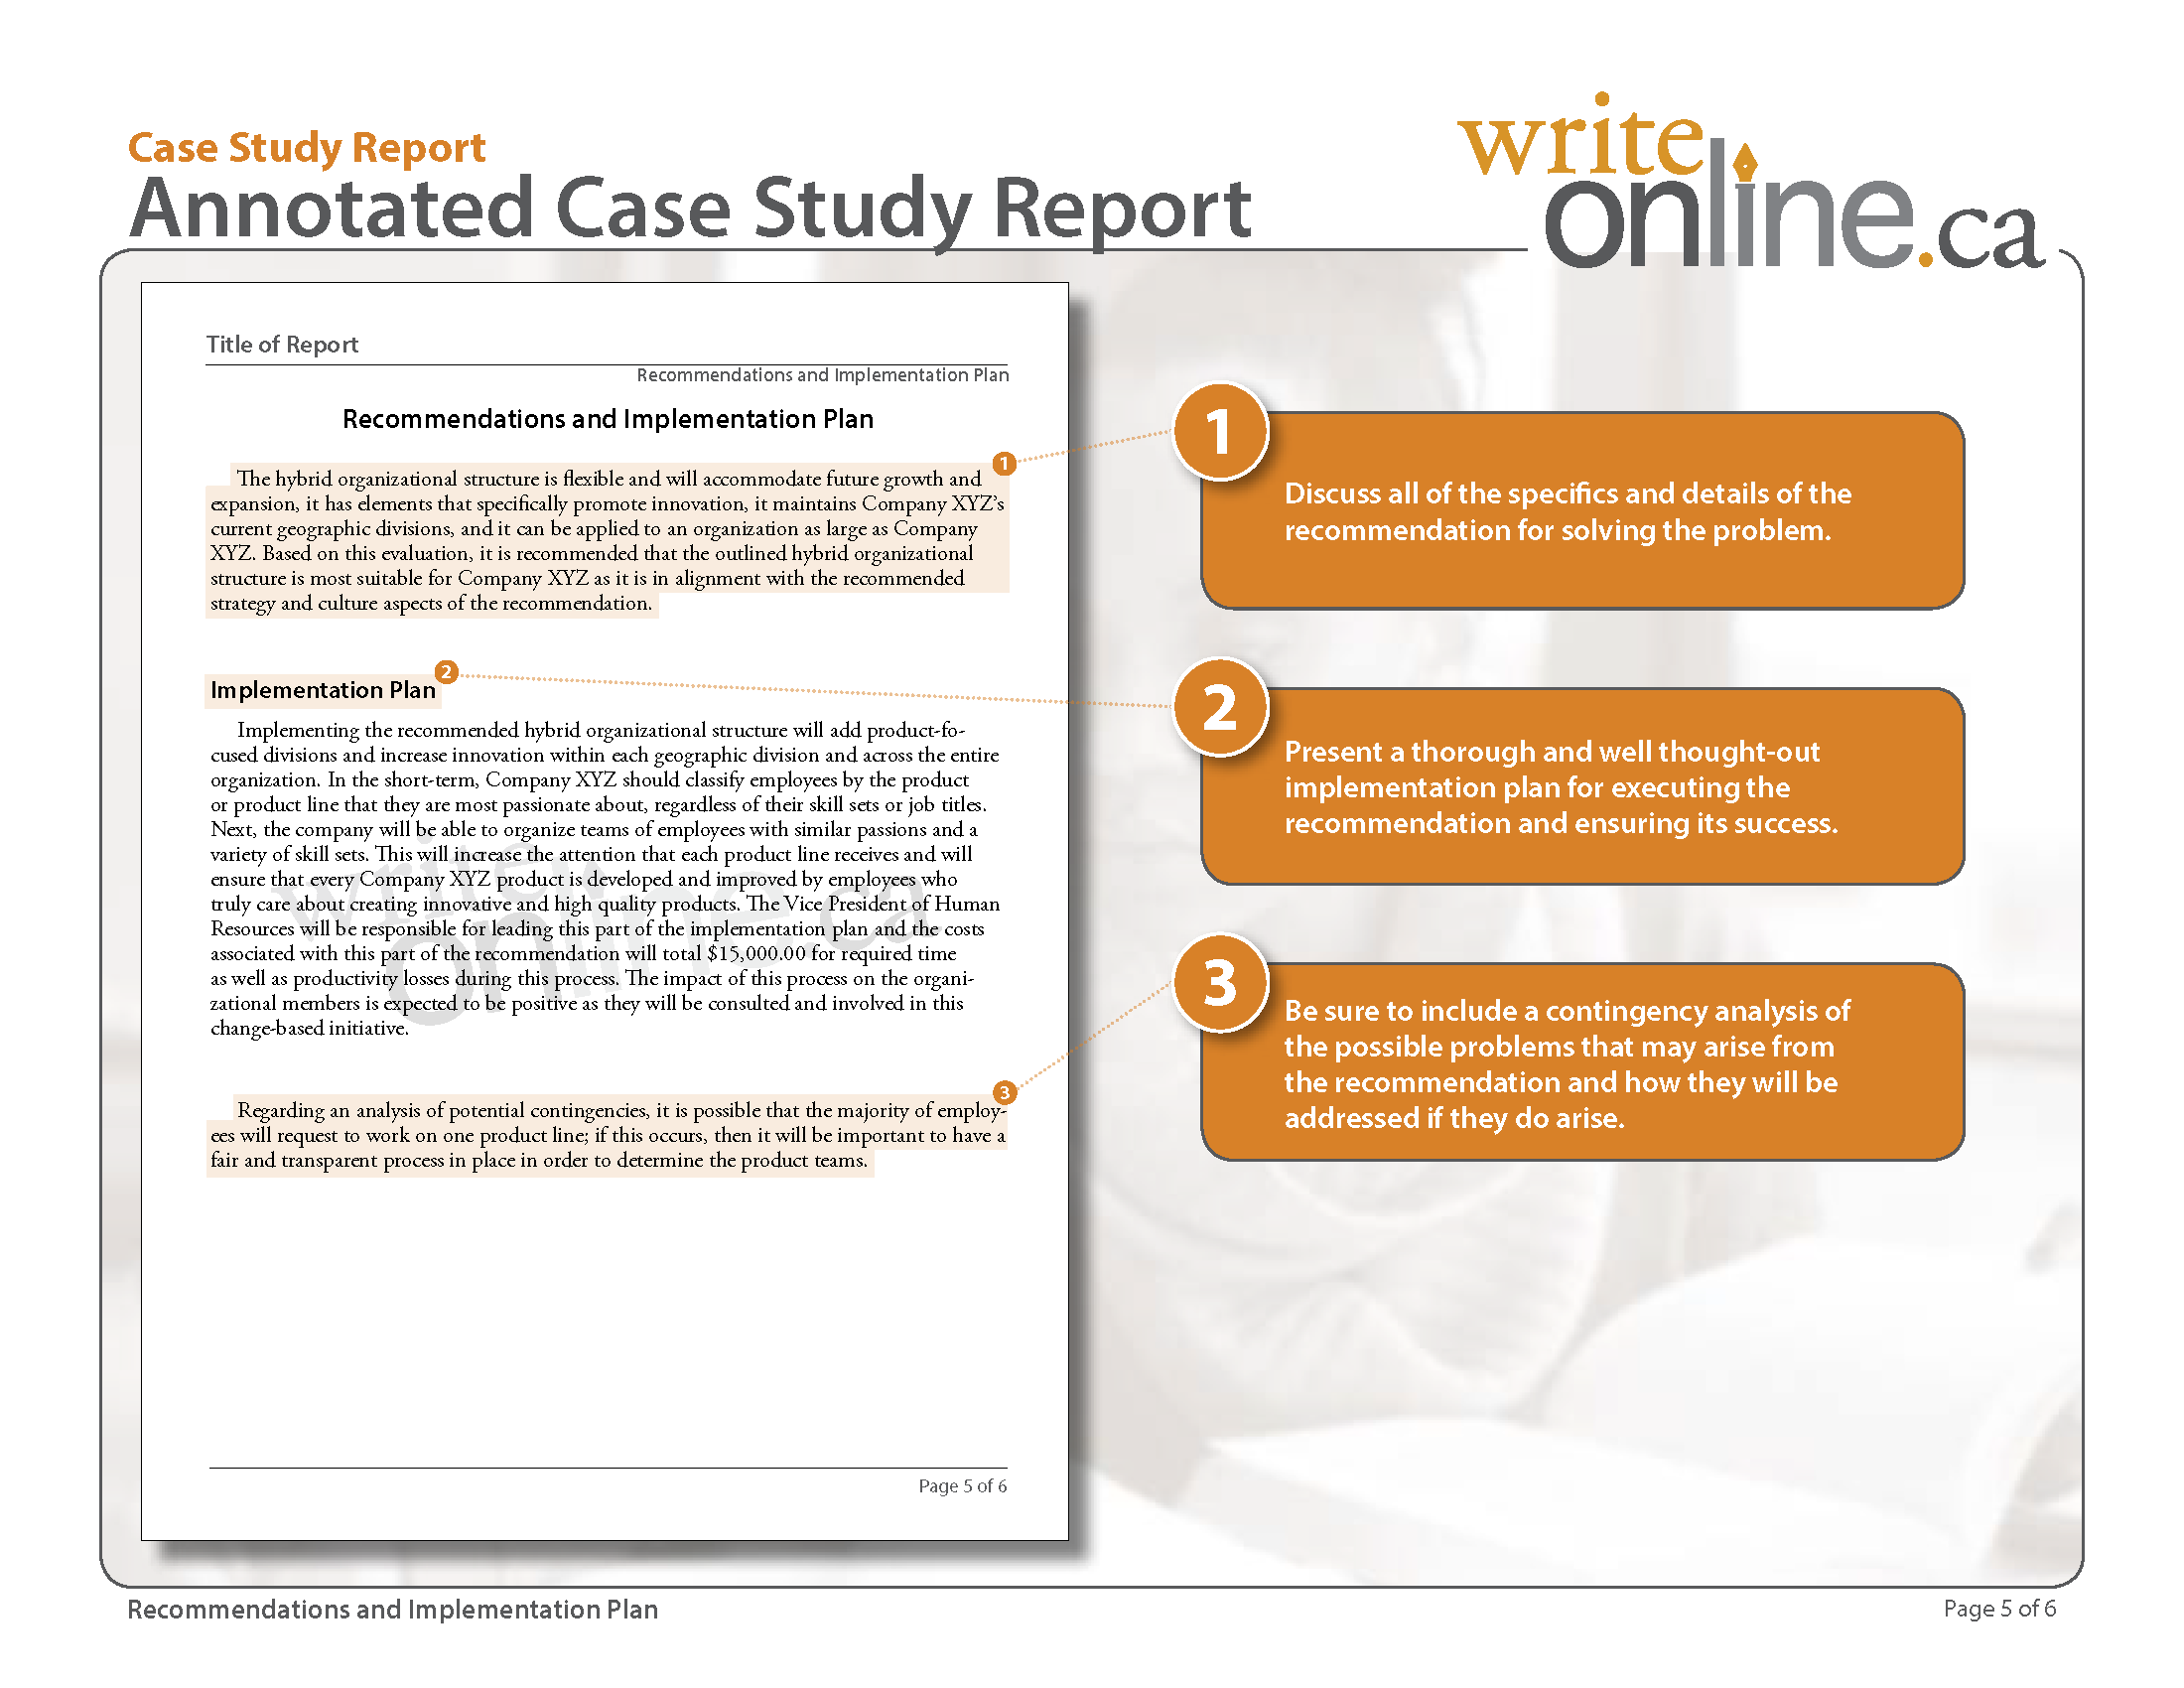 013 Casestudy Annotatedfull Page 5 Research Paper Components Of Fascinating A Apa In Format Full